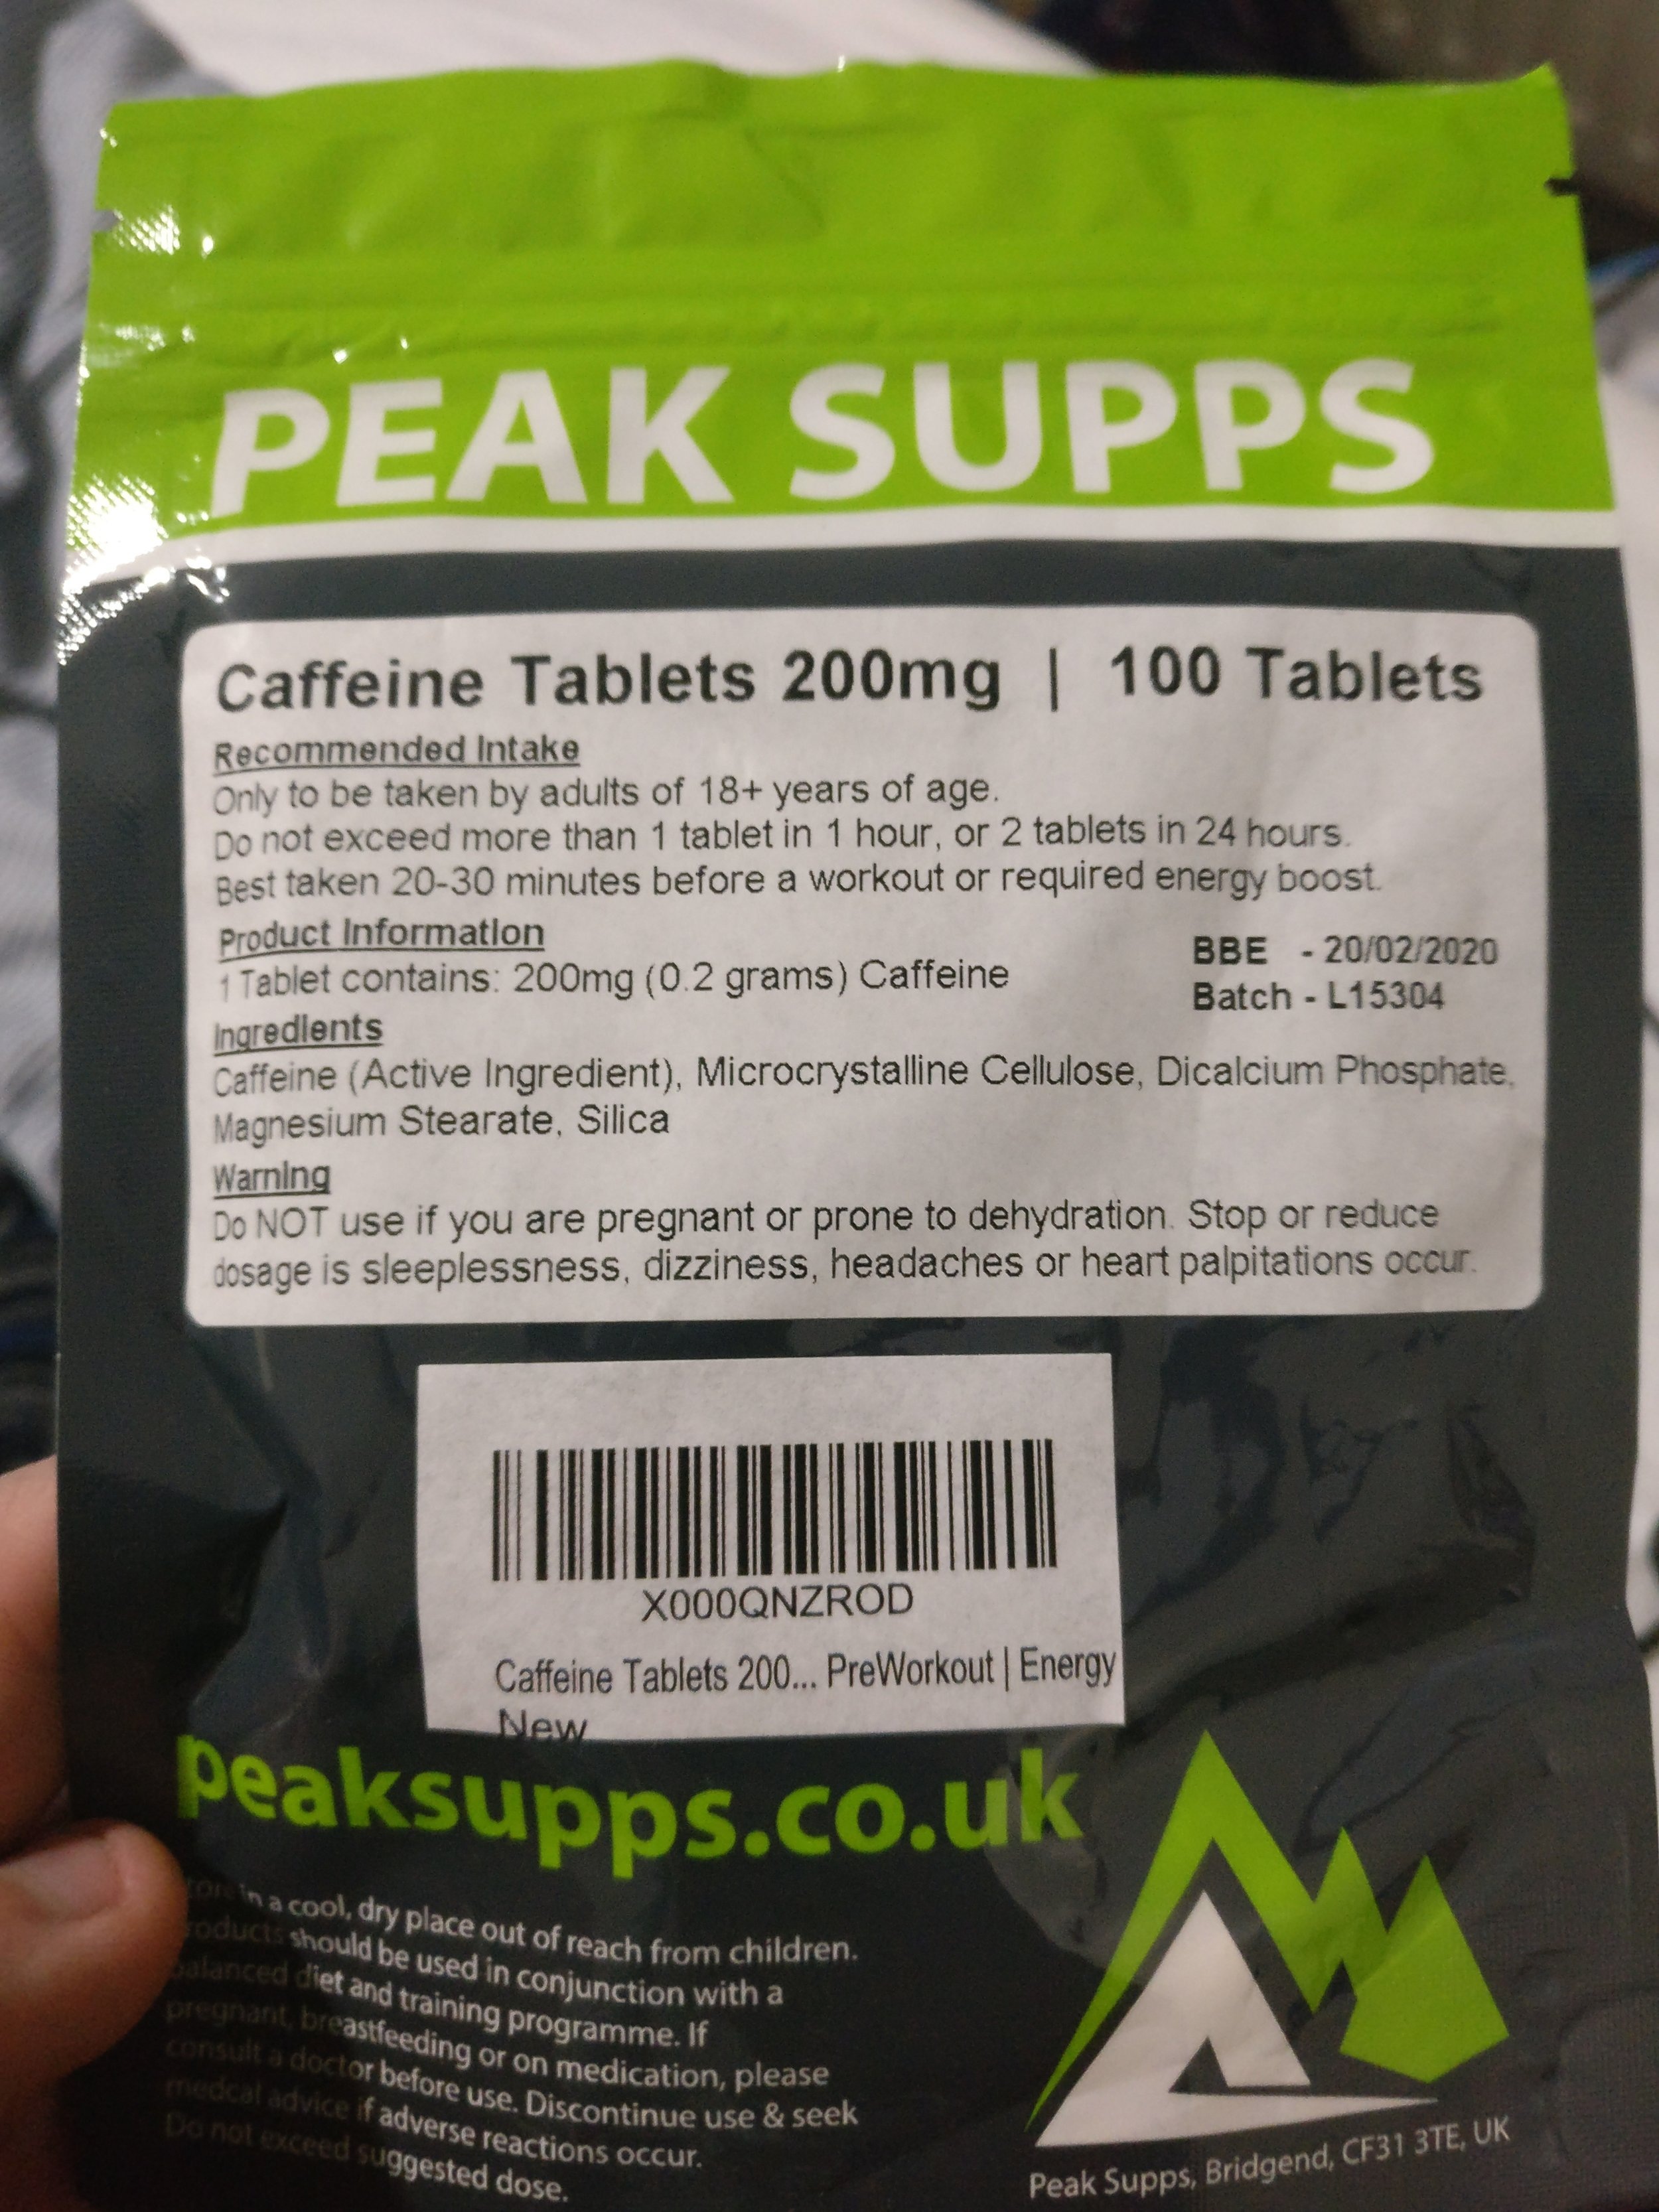 My caffeine tablets arrived today. It begins.